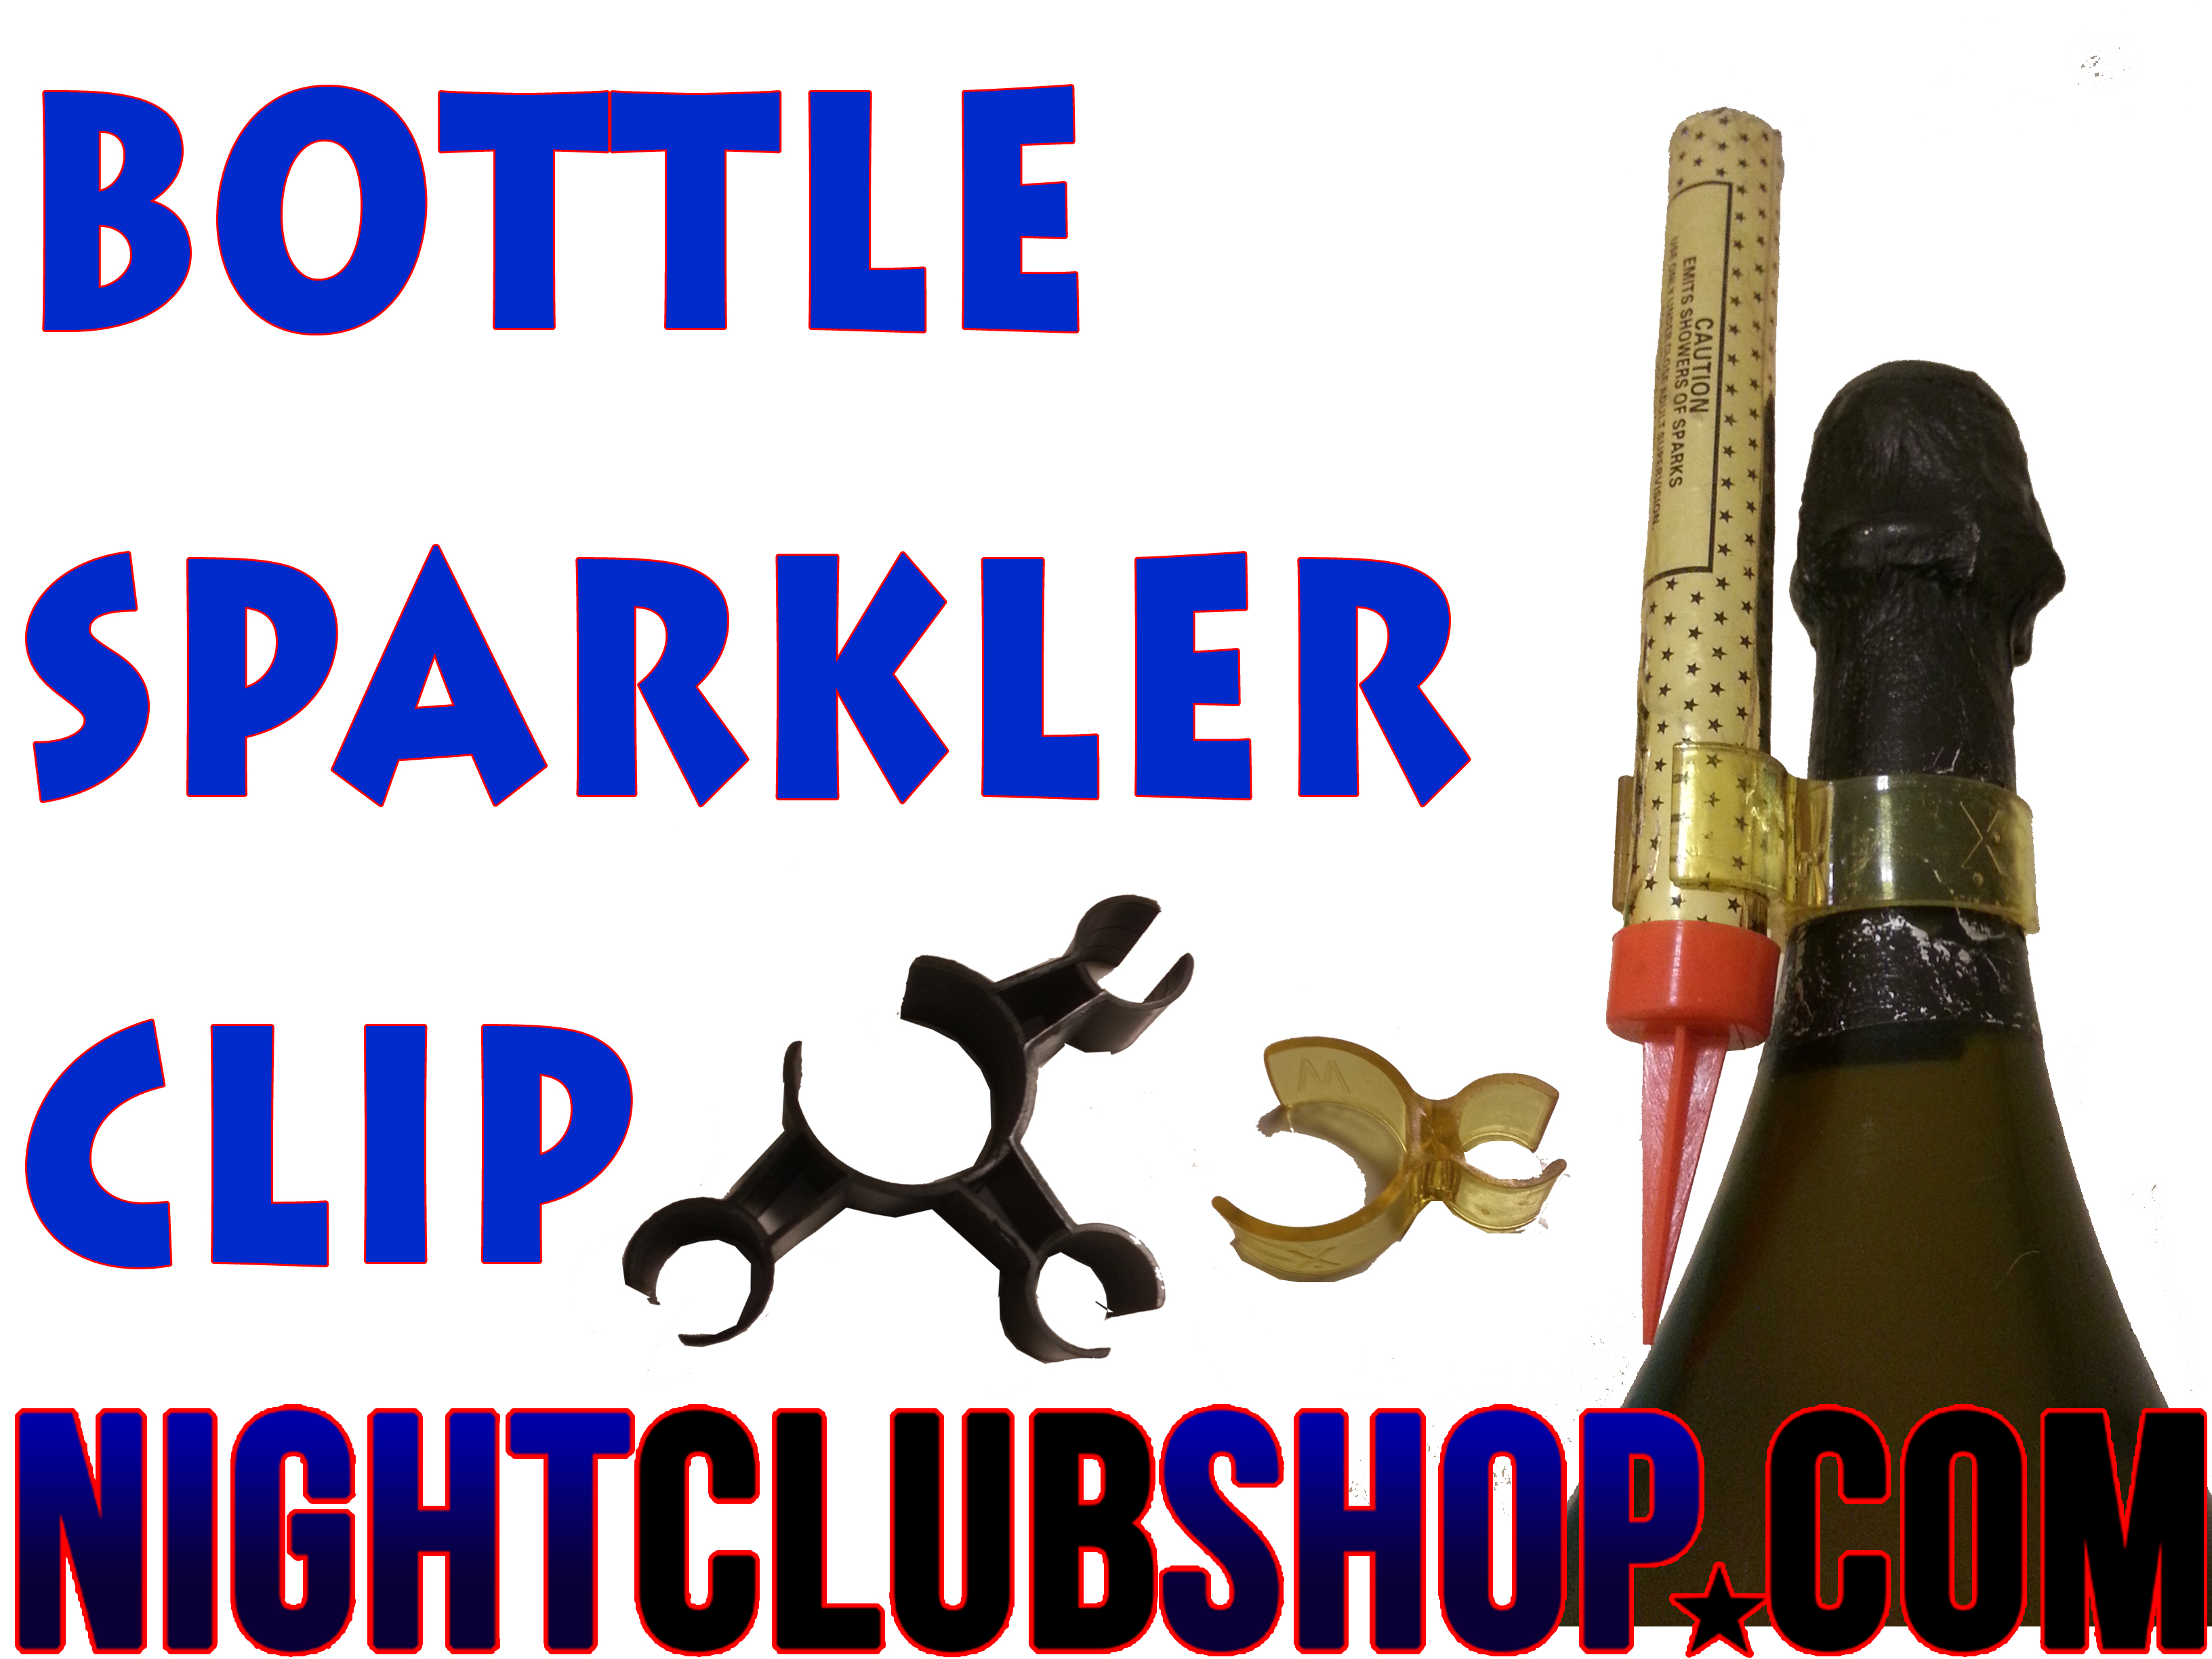 bottle-sparkler-clip-use-safety-.jpg